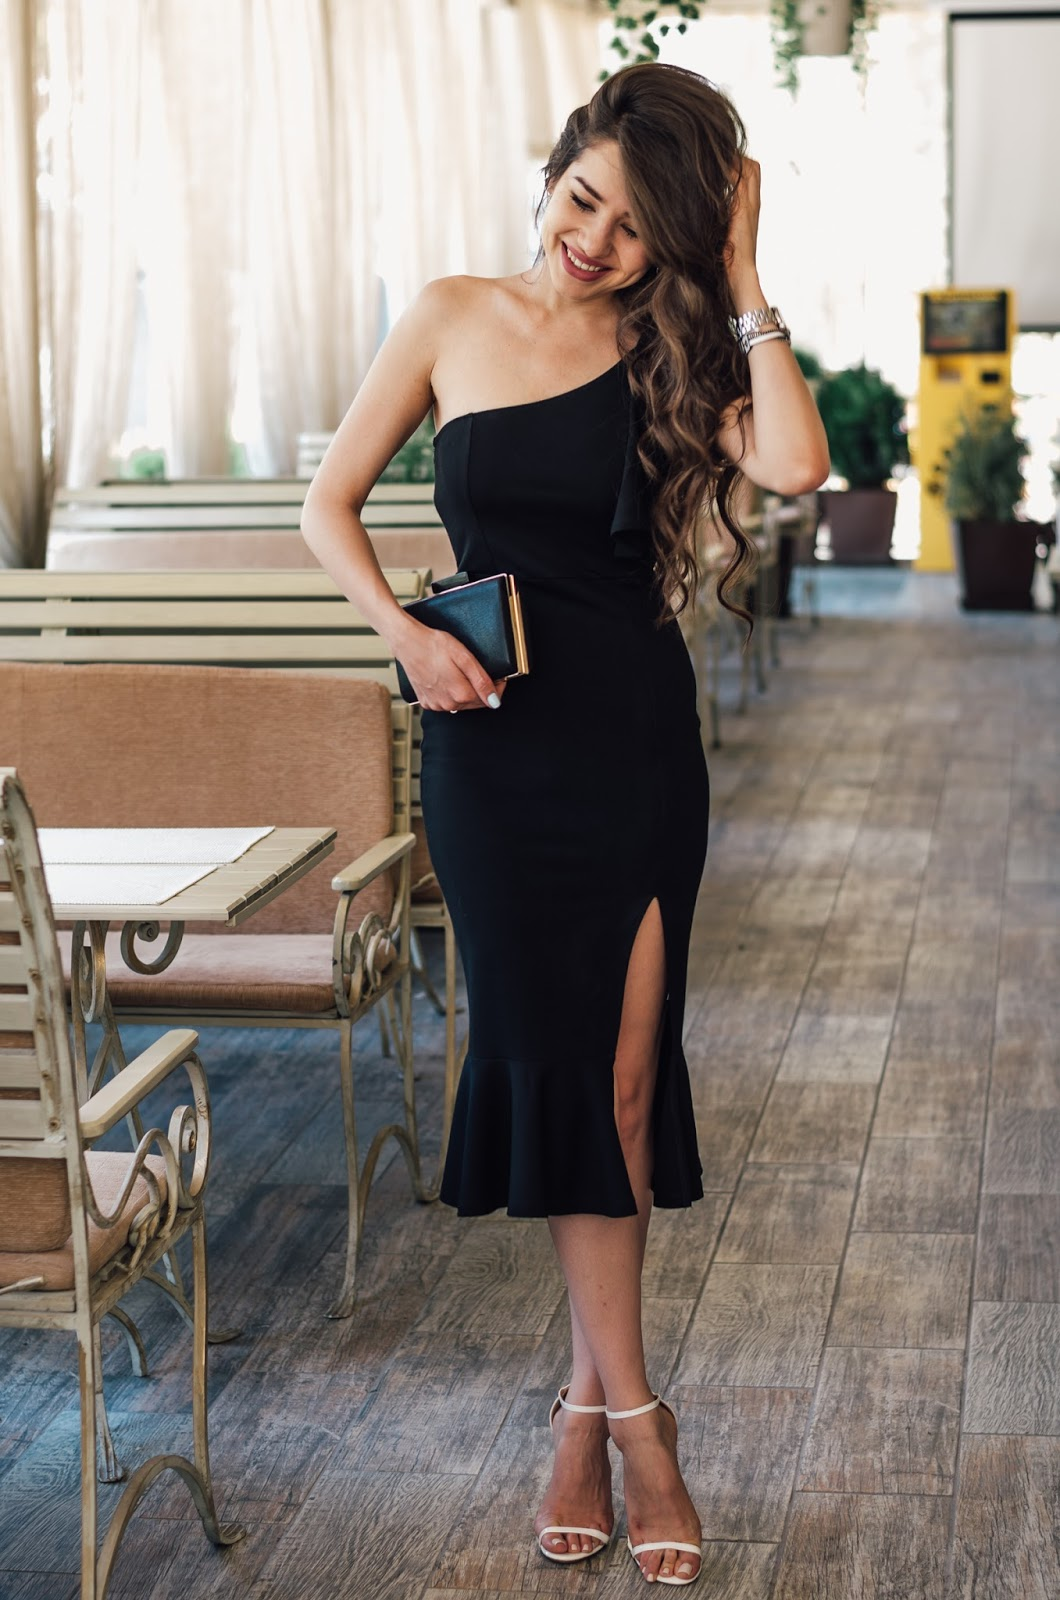 fashion blogger diyorasnotes diyora beta formal dress black midi dress ruffle outfitoftheday